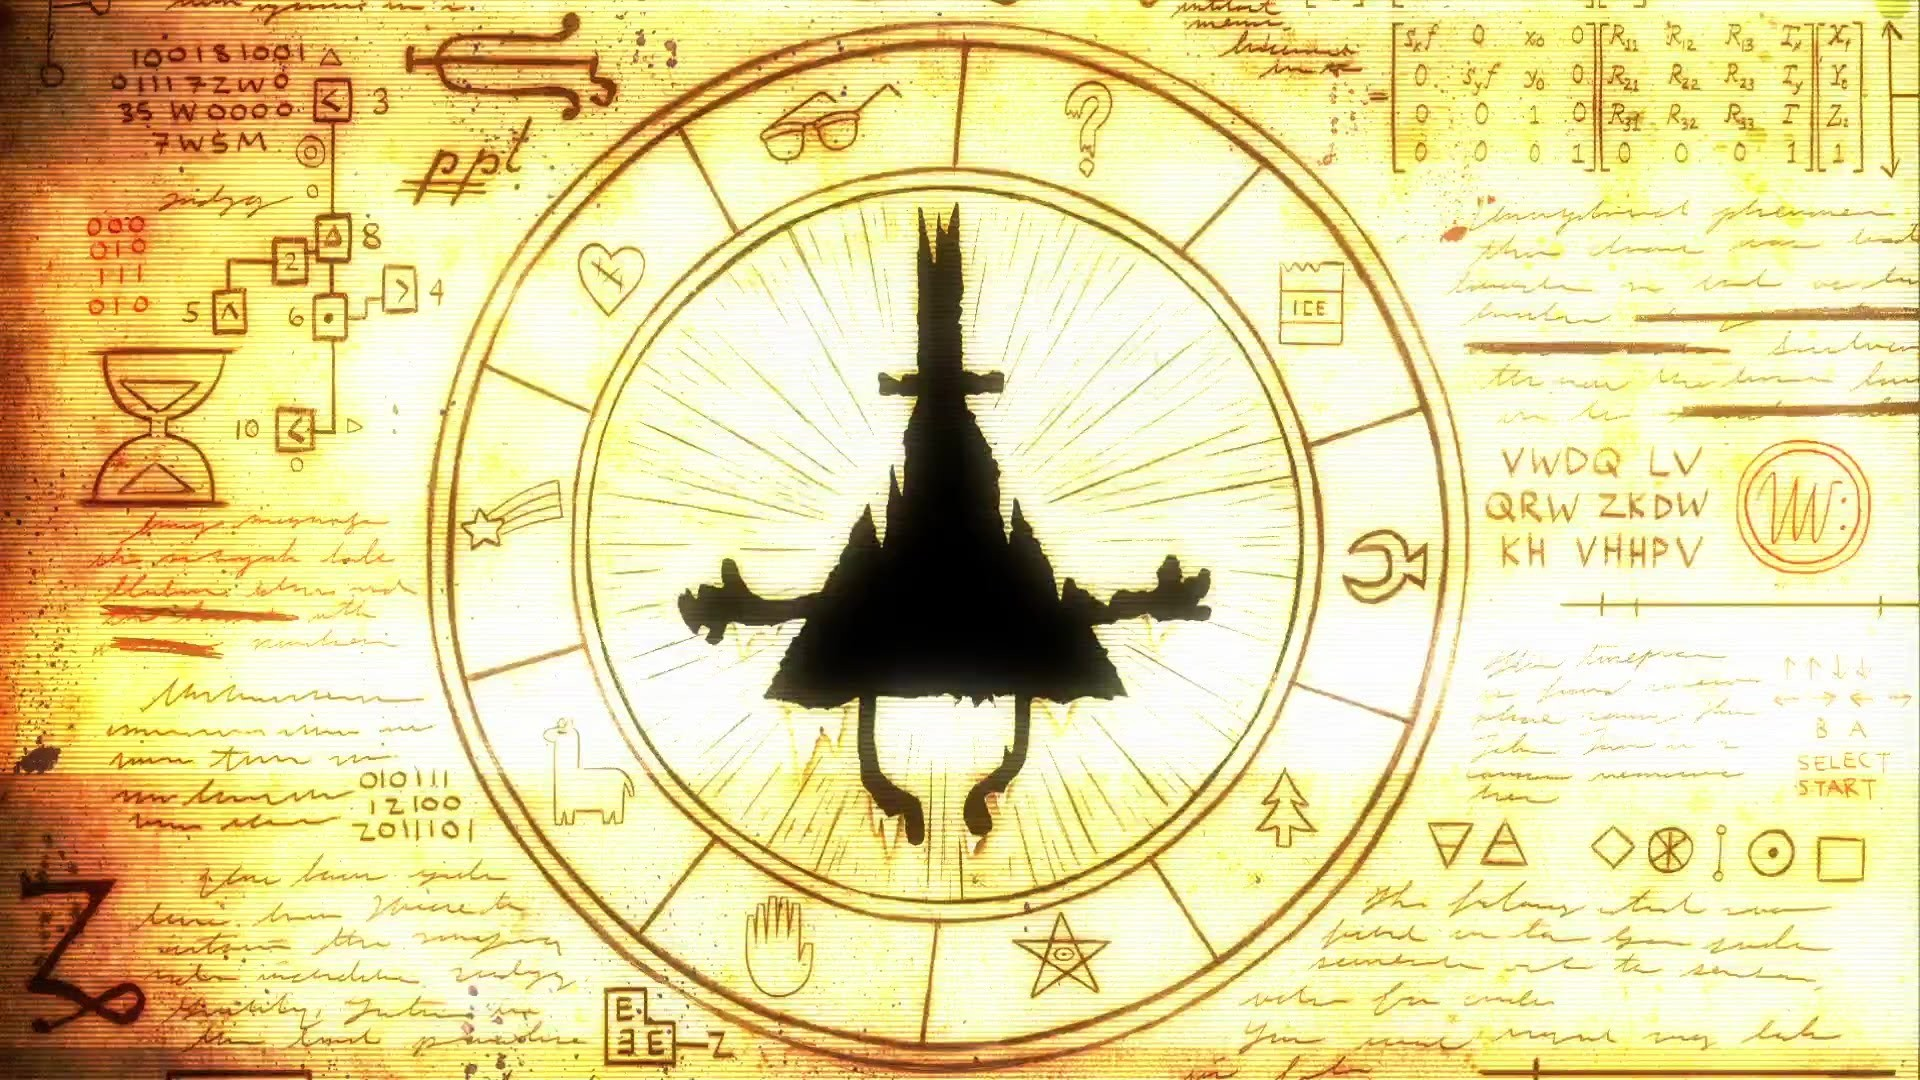 Gravity Falls Wallpaper 4k Bill Cipher Wallpaper 183 ① Download Free Awesome Full Hd